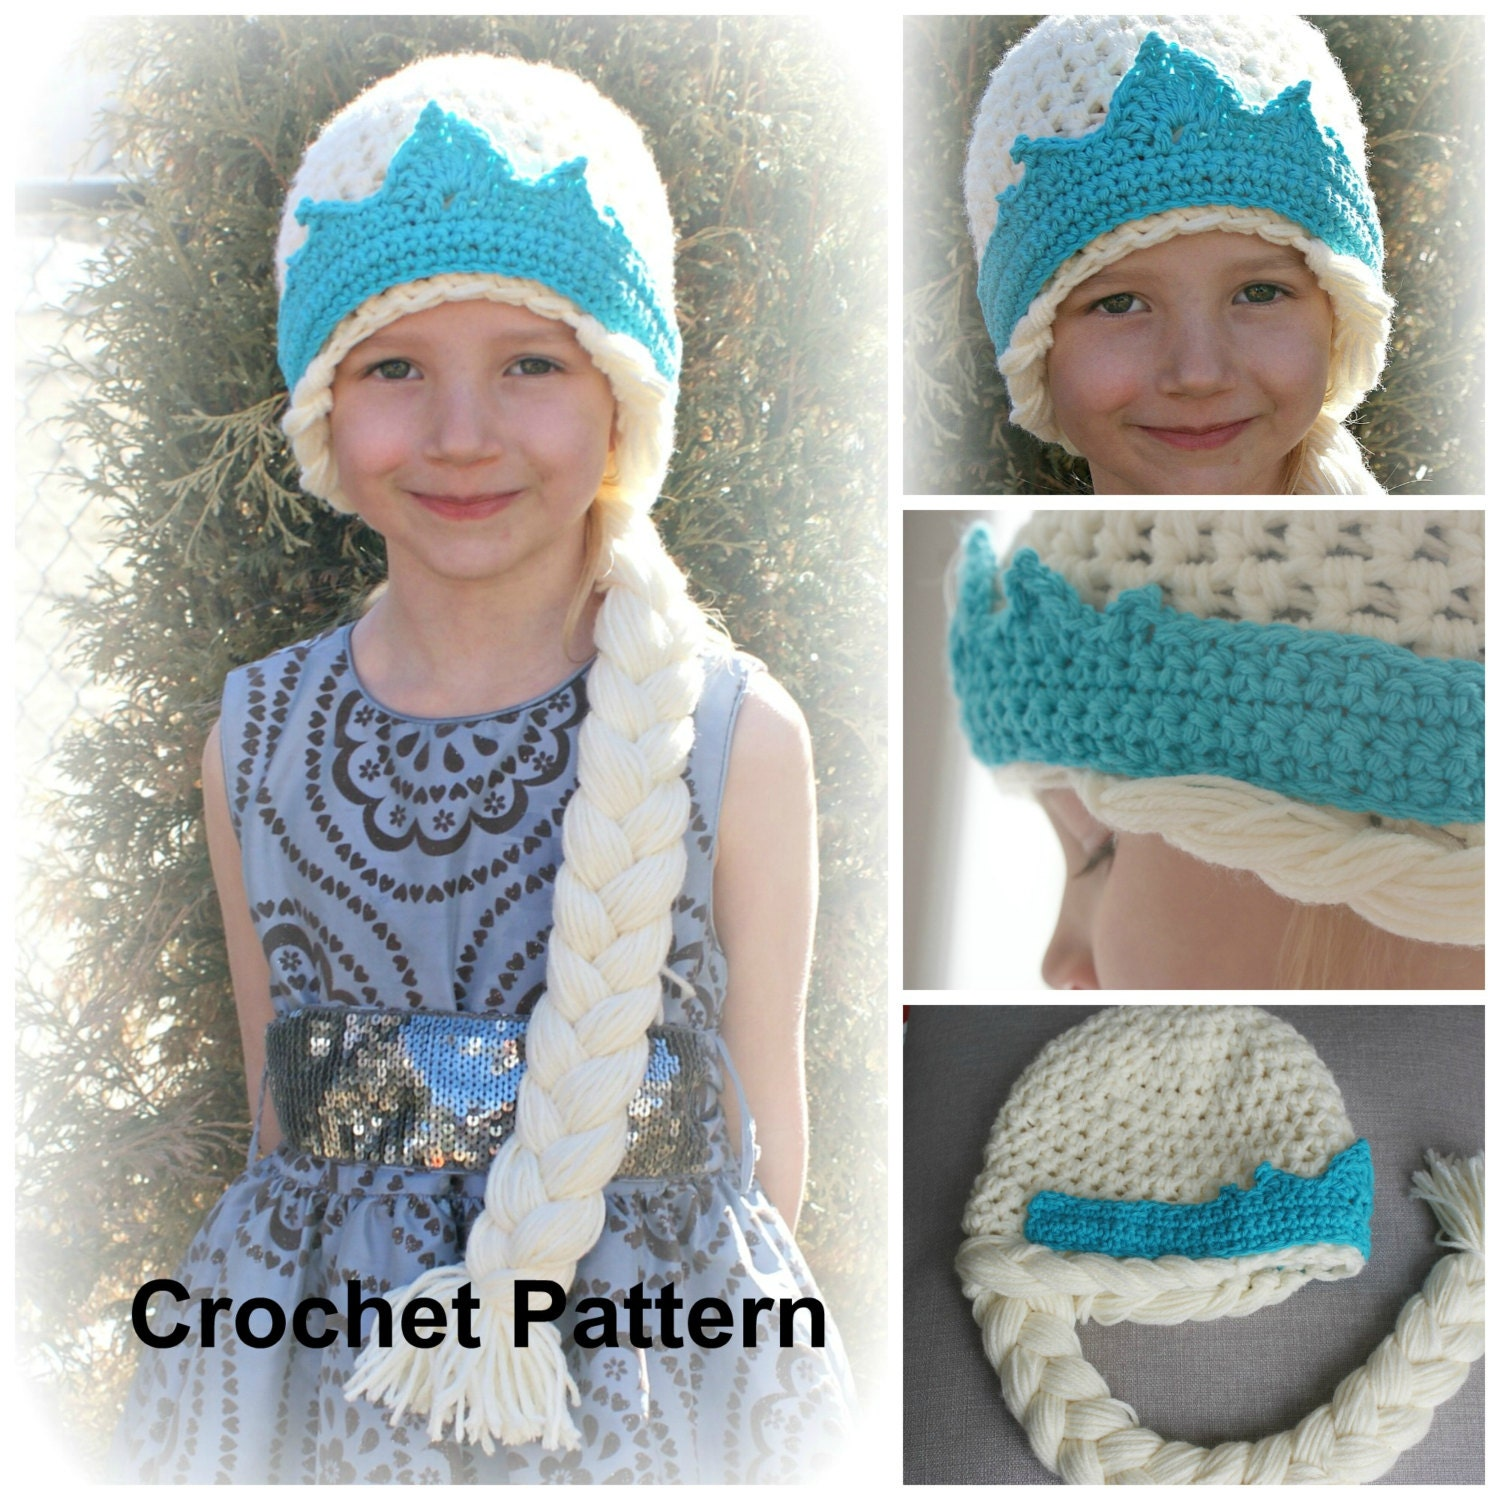 Crochet Hat Pattern For Elsa : Instant Download QUEEN ELSA Hat Pattern Crochet Pattern